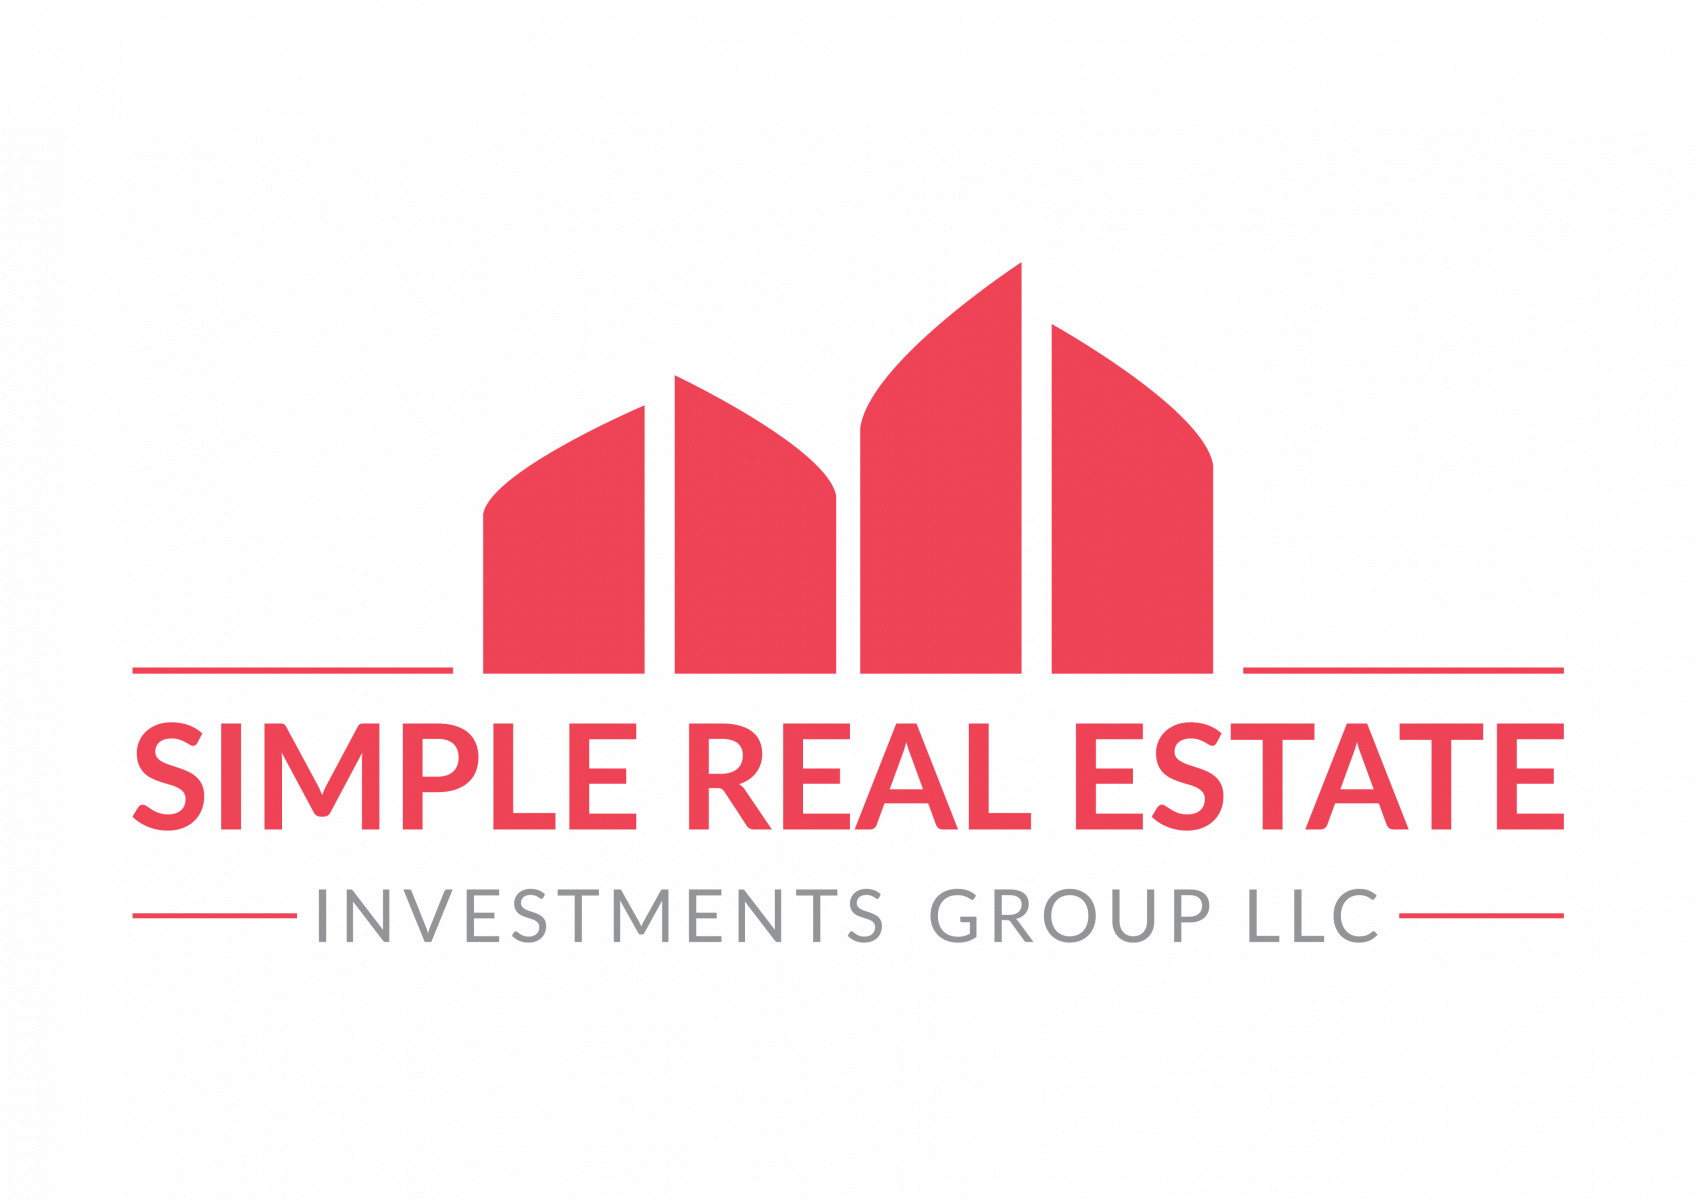 Simple Real Estate Investments Group logo